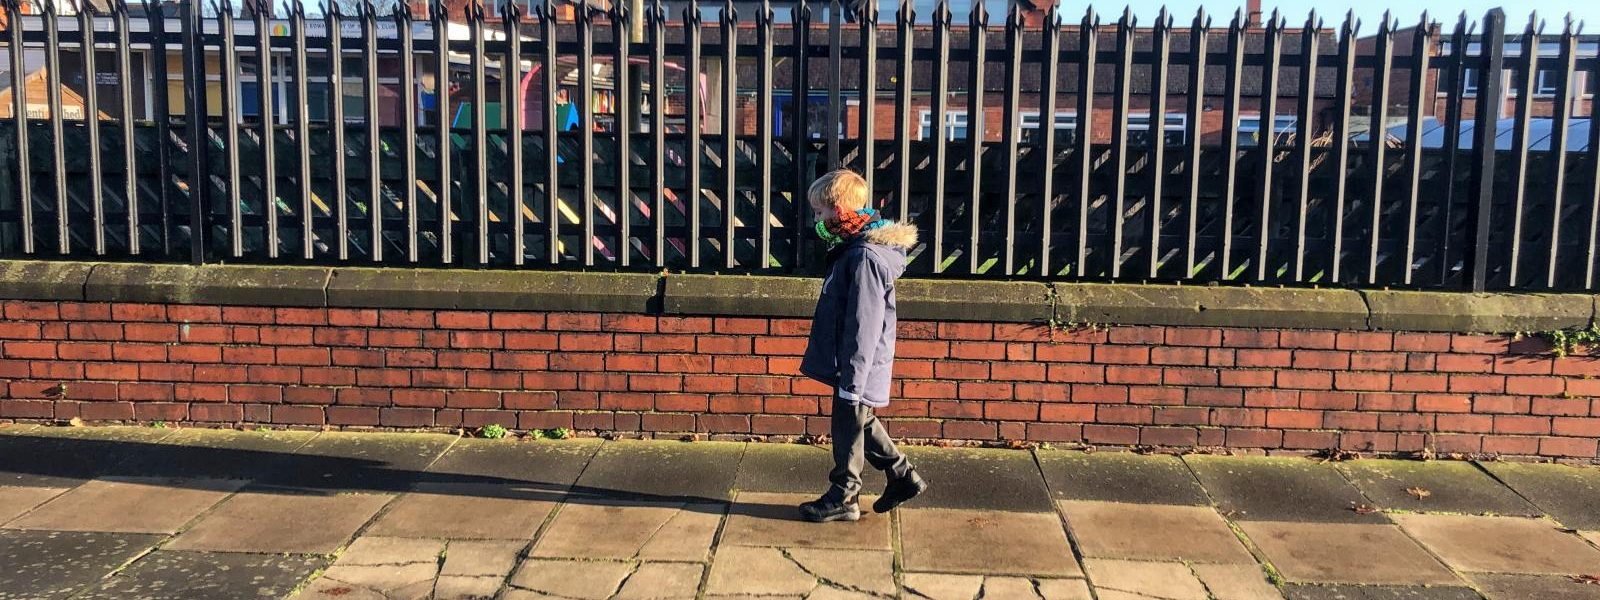 Treads Indestructible School Shoes – review